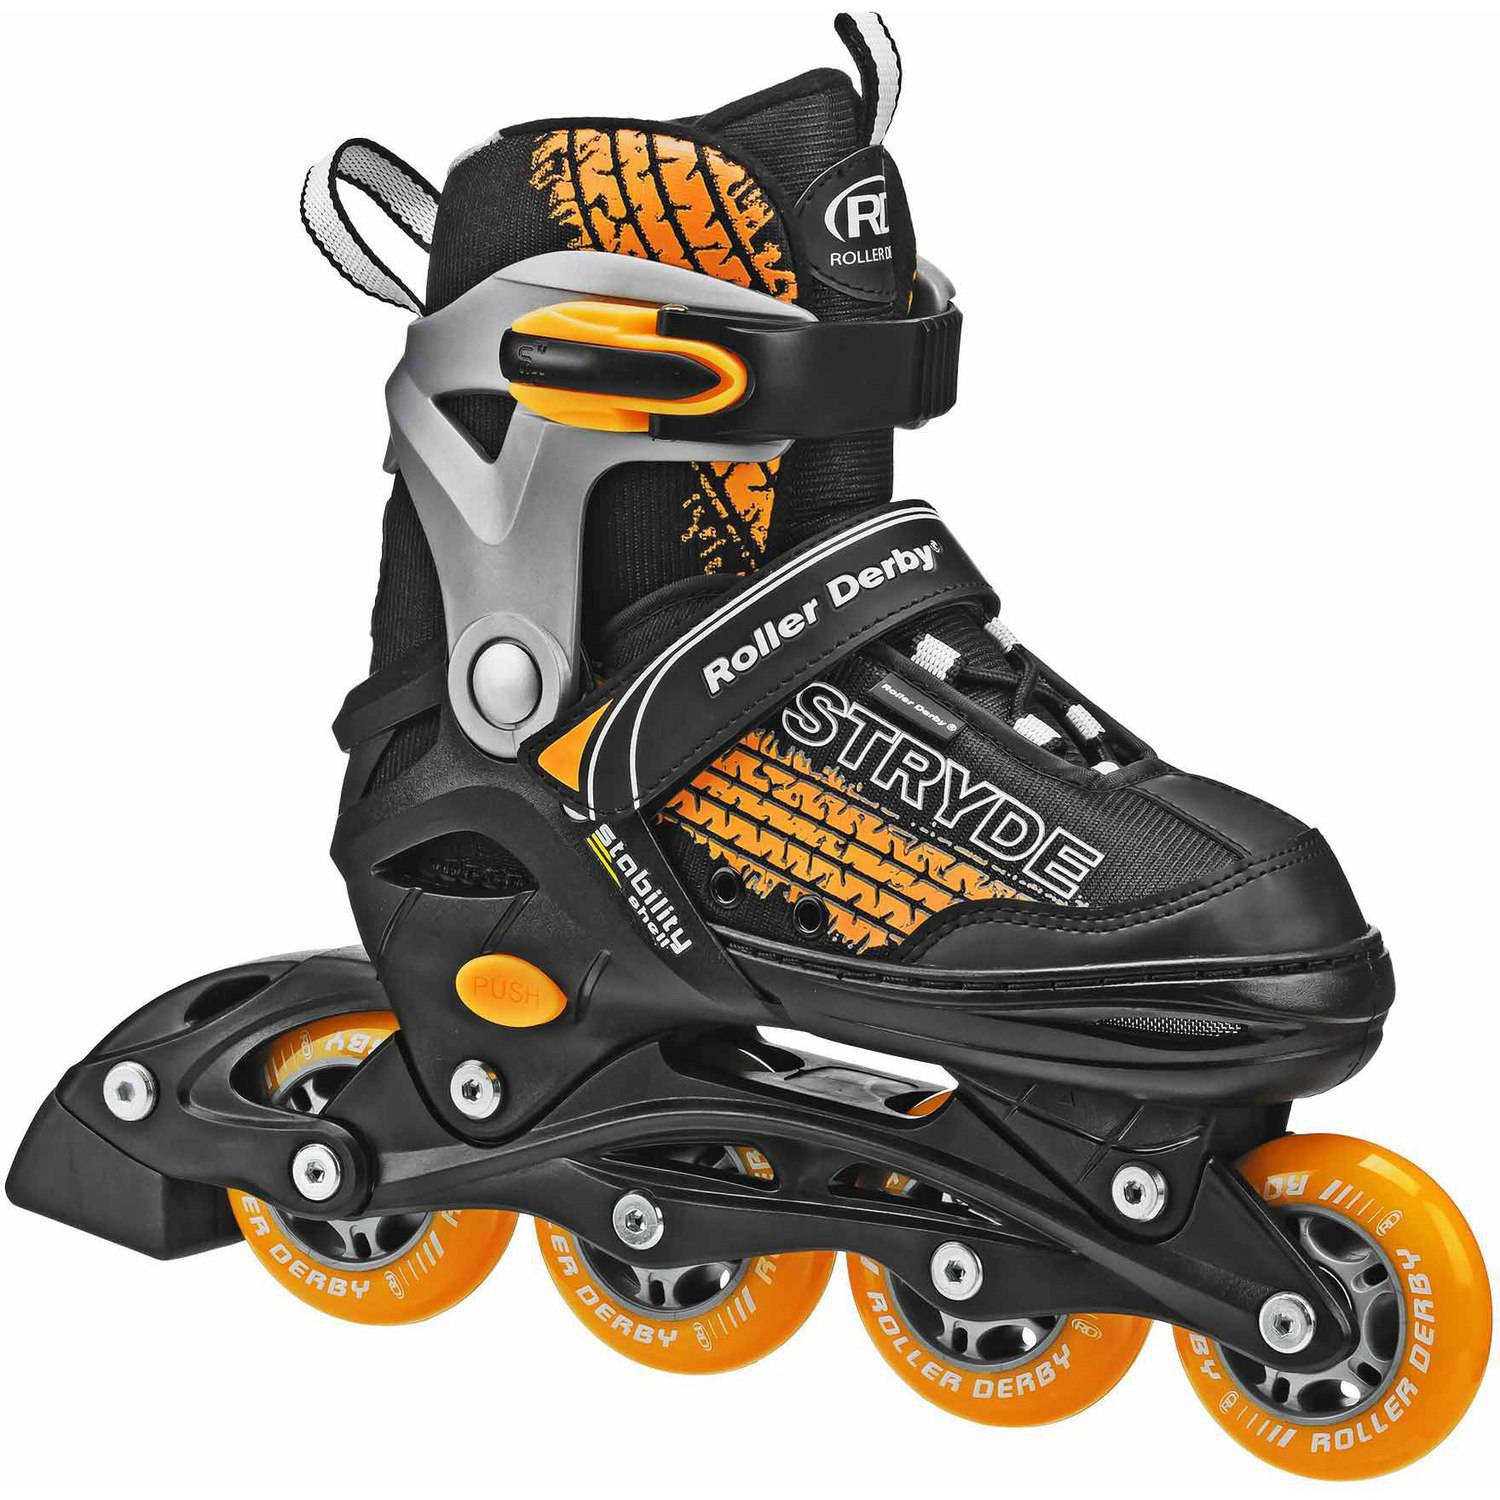 Stryde Boys' Adjustable Inline Skates, Black/Orange